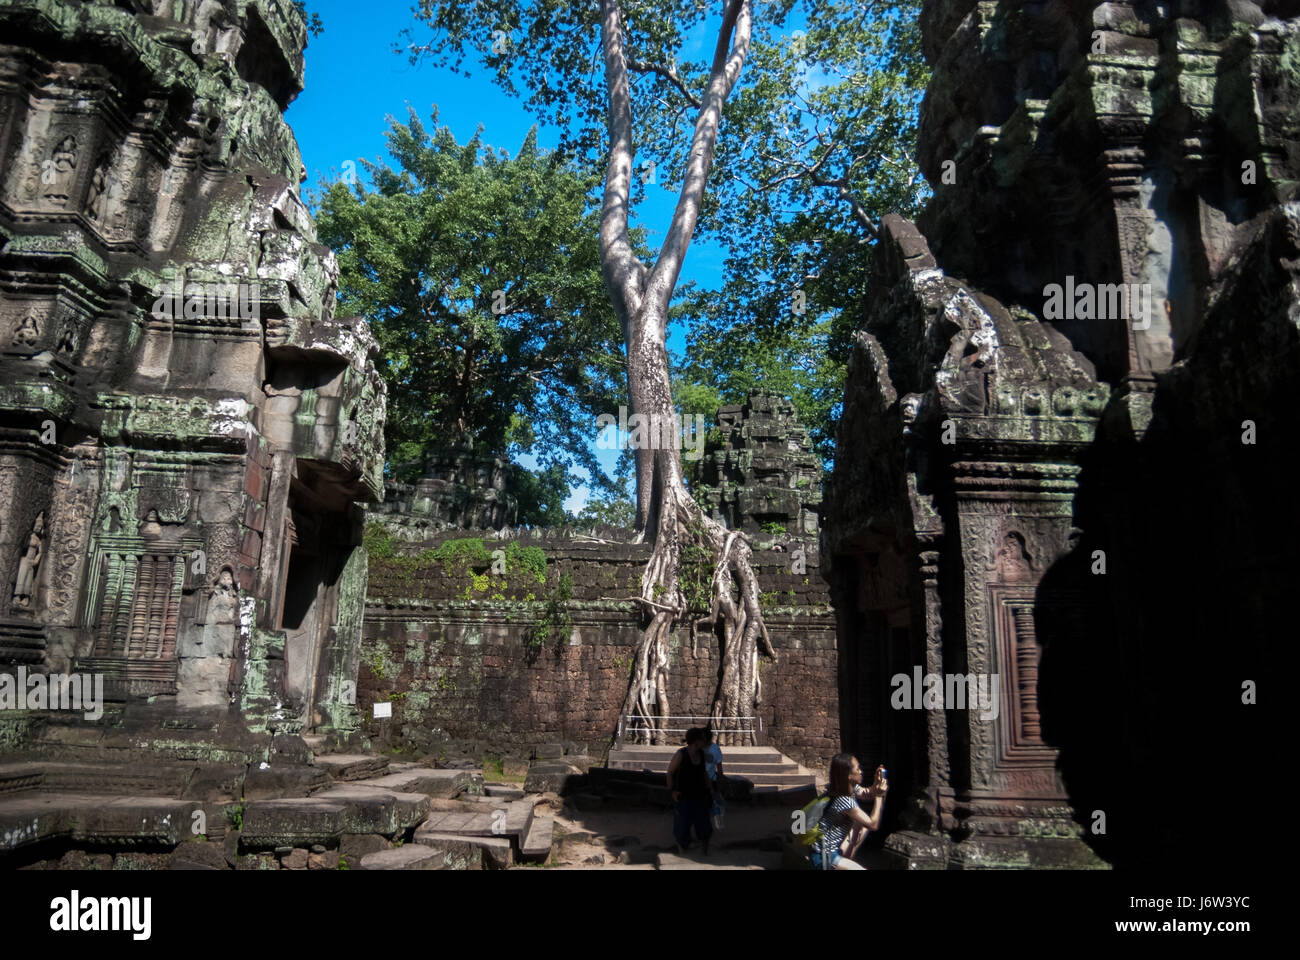 A silk-cotton tree growing on the wall of Preah Khan temple in Siem Reap, Cambodia. - Stock Image